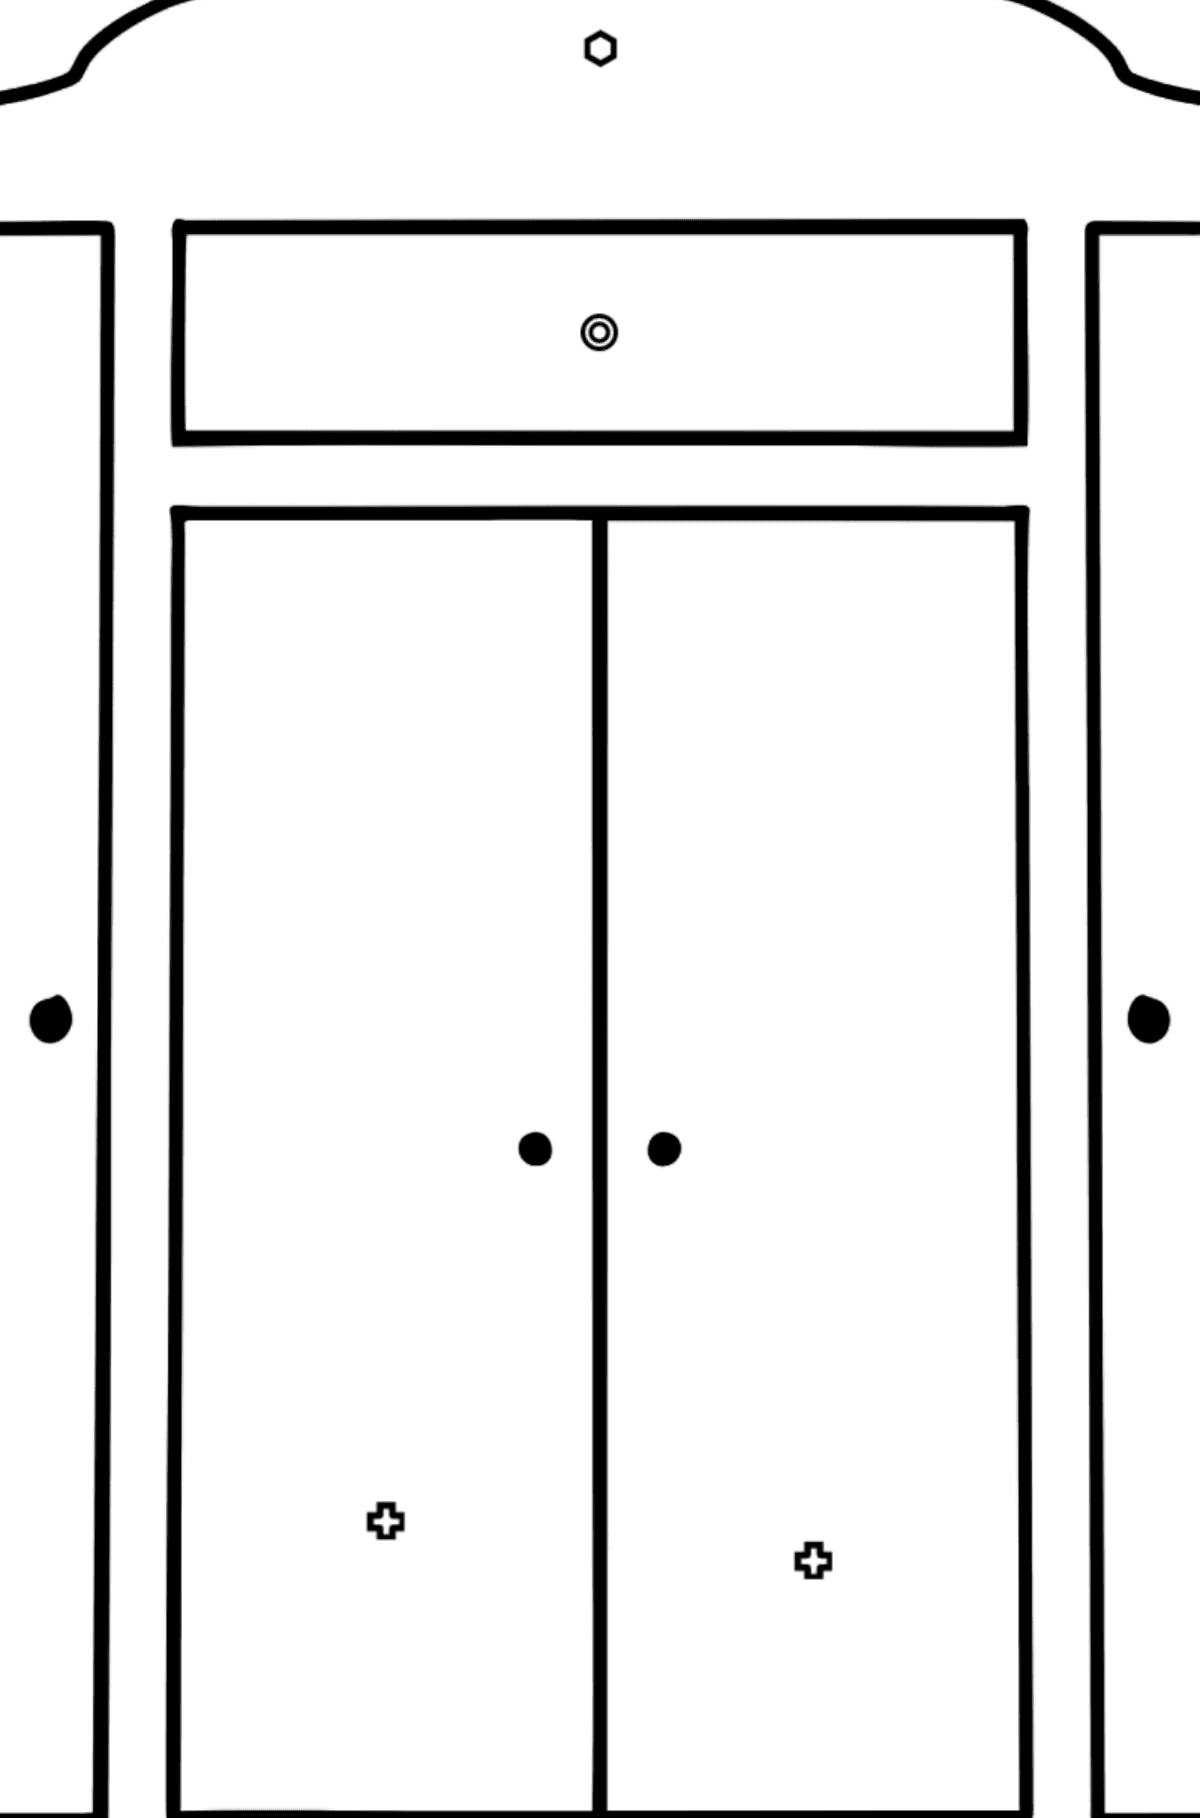 Wardrobe coloring page - Coloring by Geometric Shapes for Kids